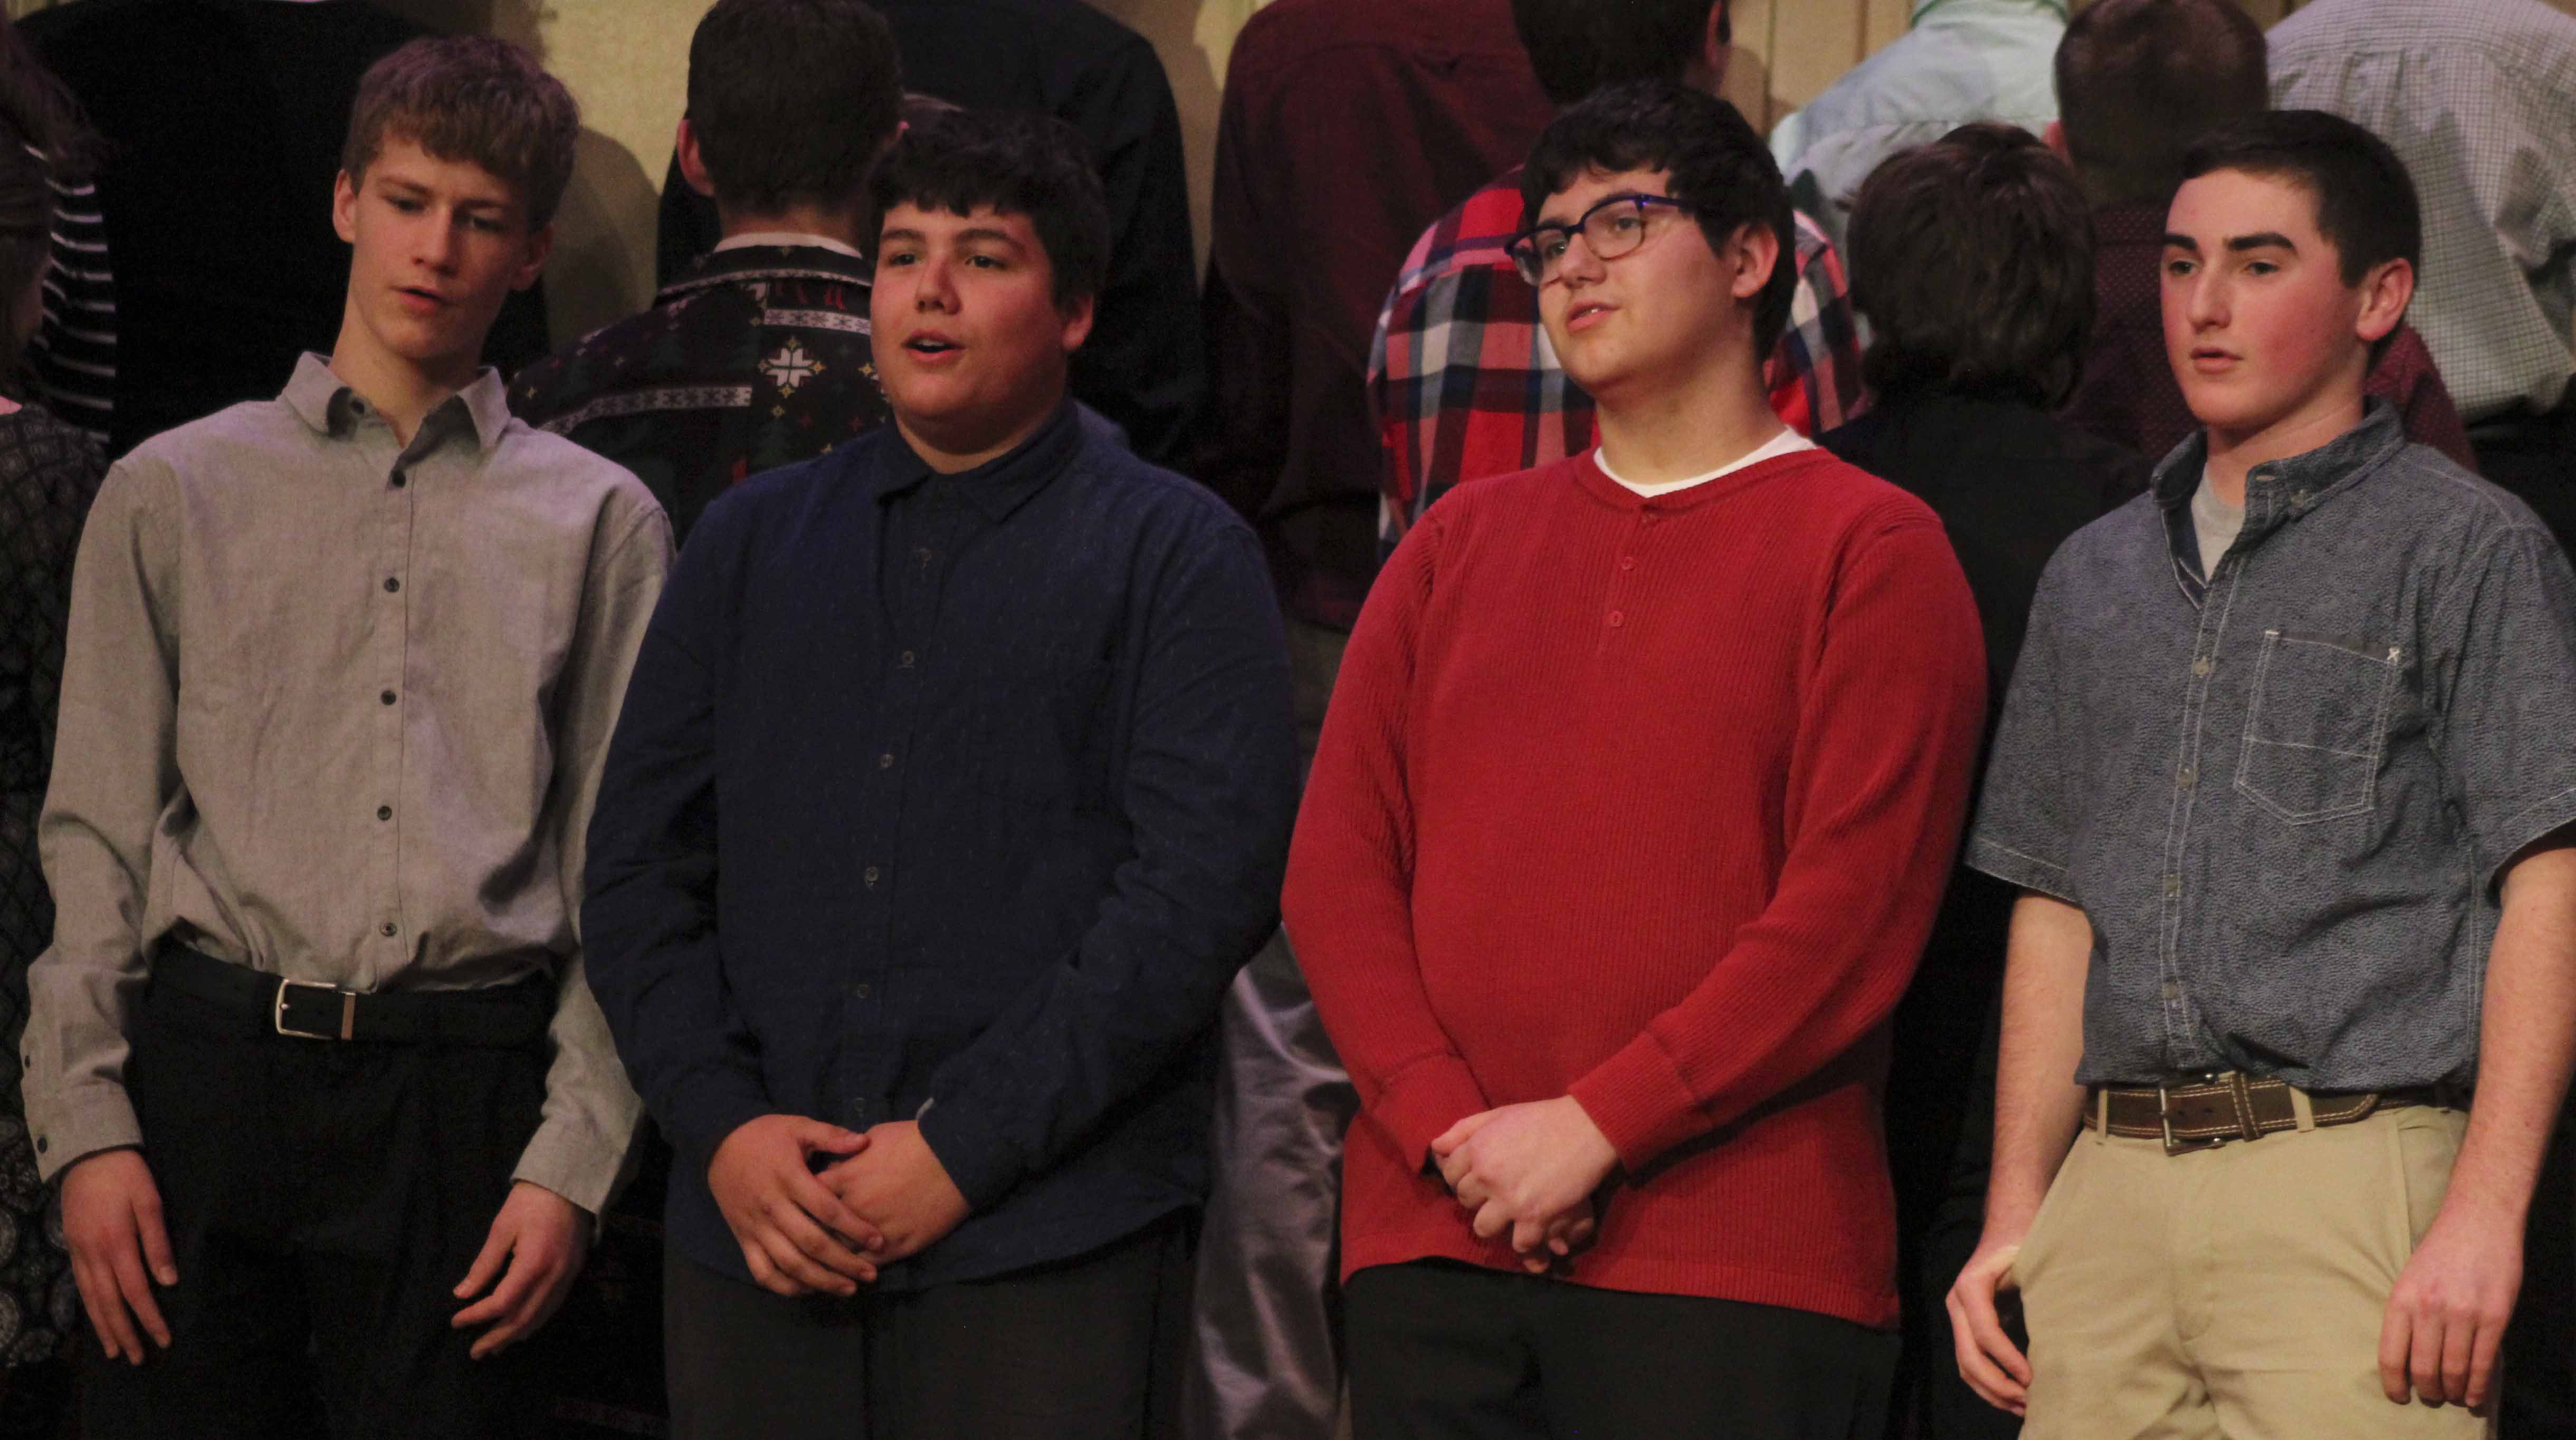 """Monticello Middle School presented """"A Christmas Noel,"""" a grade 7-8 vocal concert, Dec. 18 in the middle school auditorium. Eighth-grade performers include, from left: Austin Kurt, Ian Taylor, Brodie Clemmons and Dillon McDonald."""